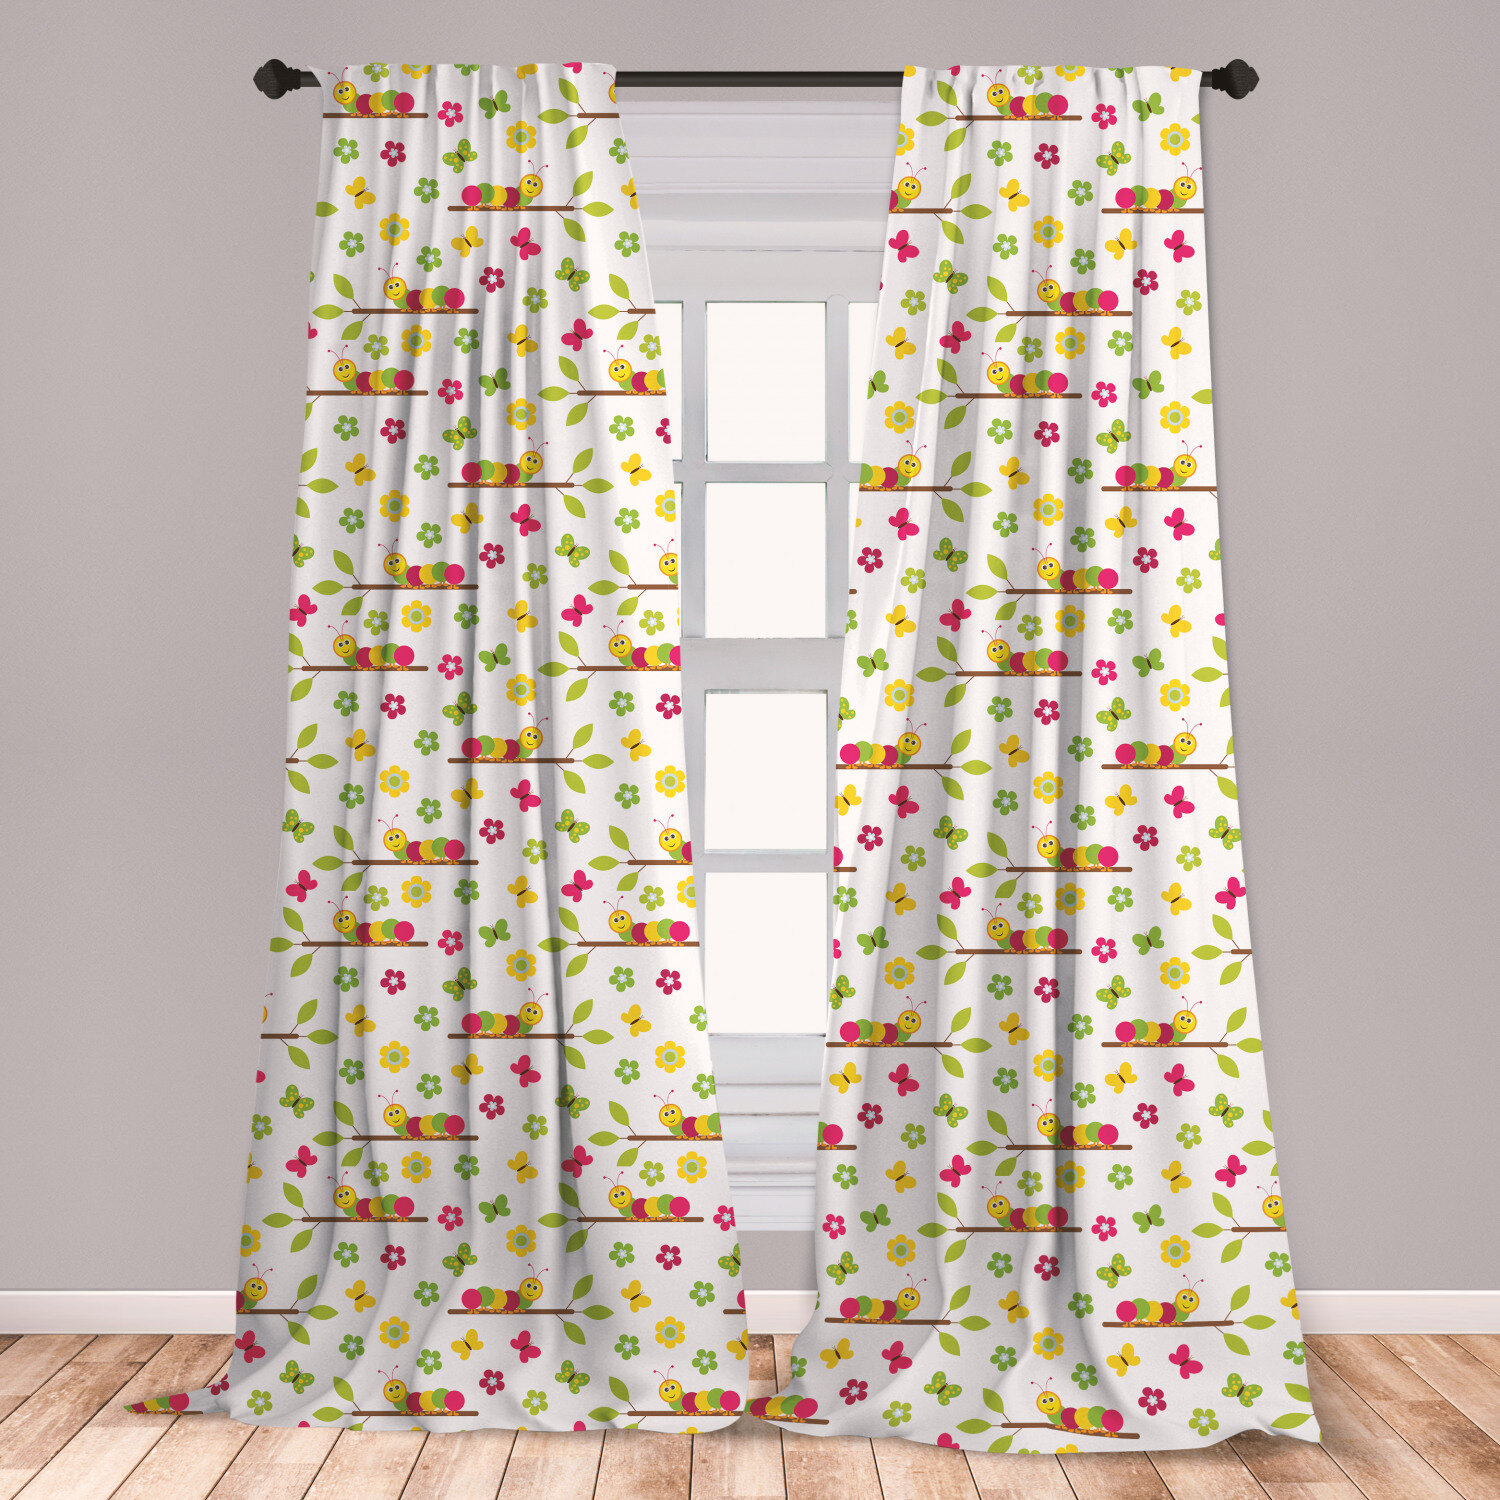 East Urban Home Ambesonne Caterpillar 2 Panel Curtain Set Colourful Preschool Concept Of Cheerful Caterpillars On Tree Branches Pattern Lightweight Window Treatment Living Room Bedroom Decor 56 X 63 Multicolor Wayfair Ca